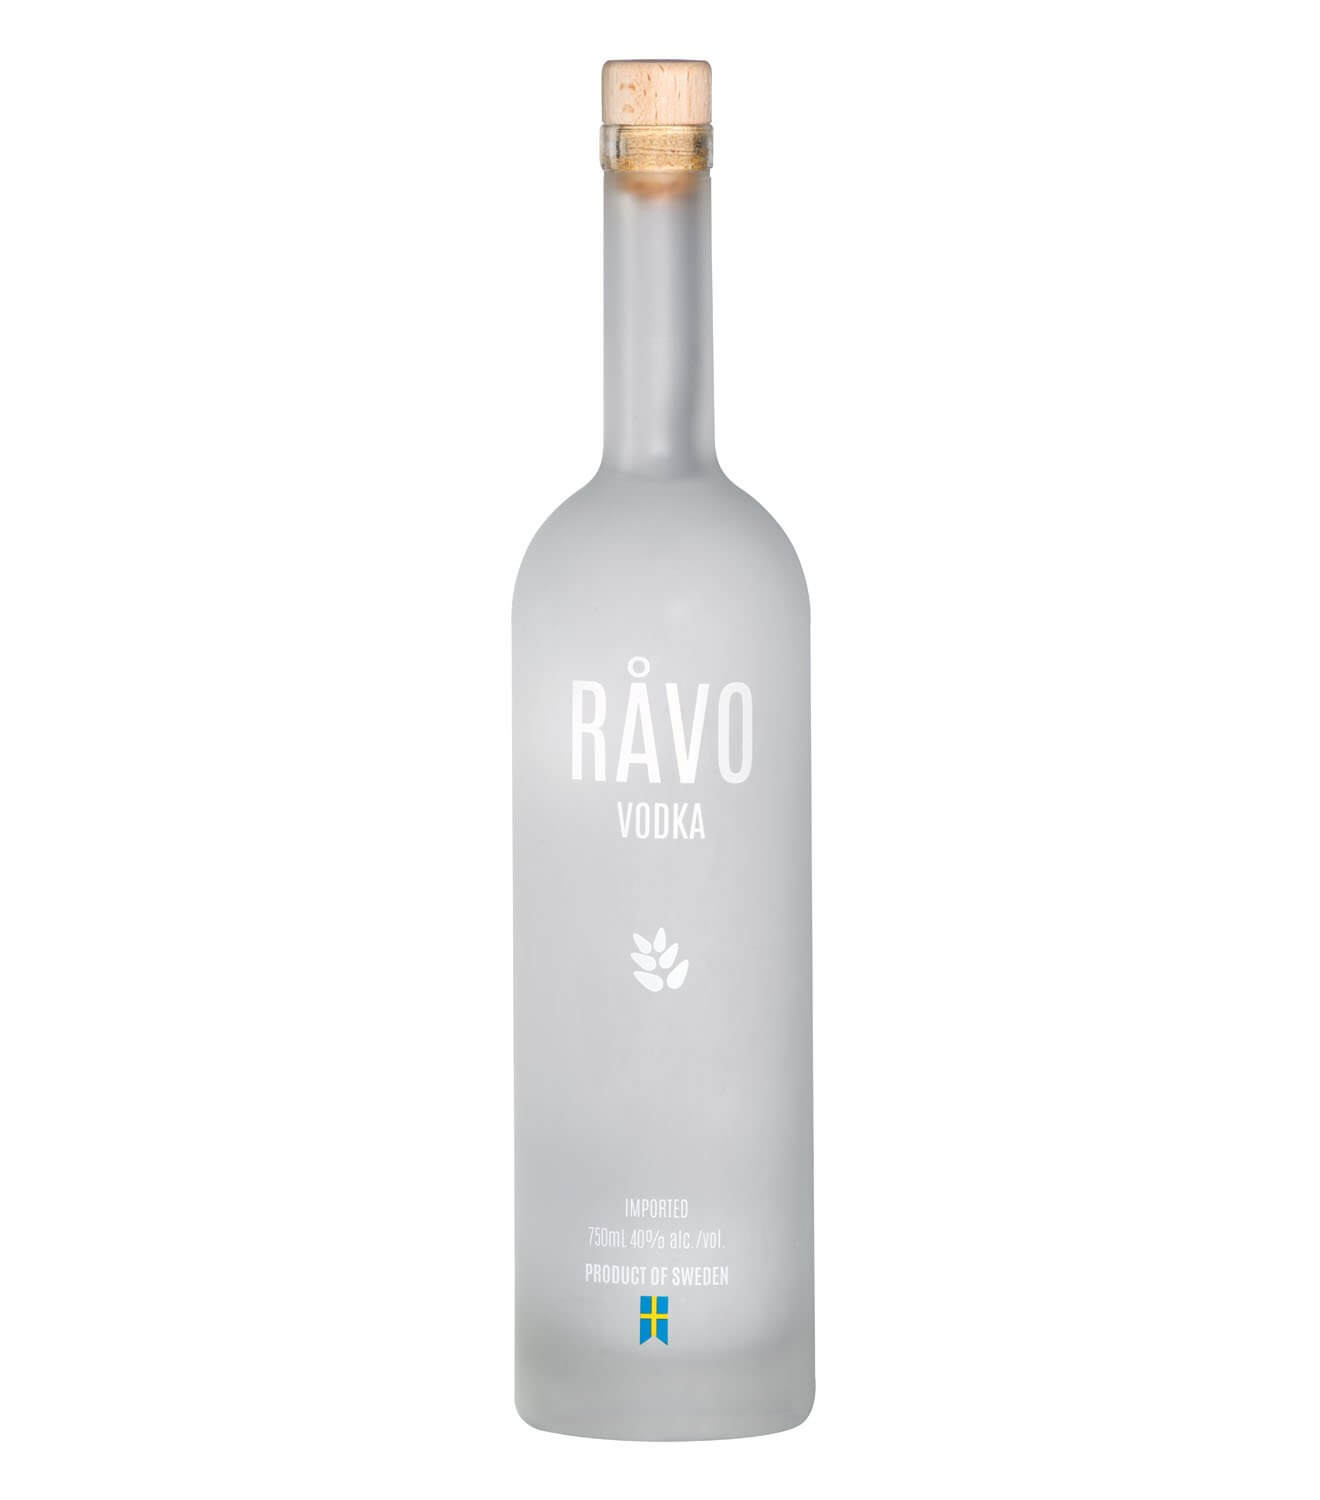 Råvo Vodka, bottle on white